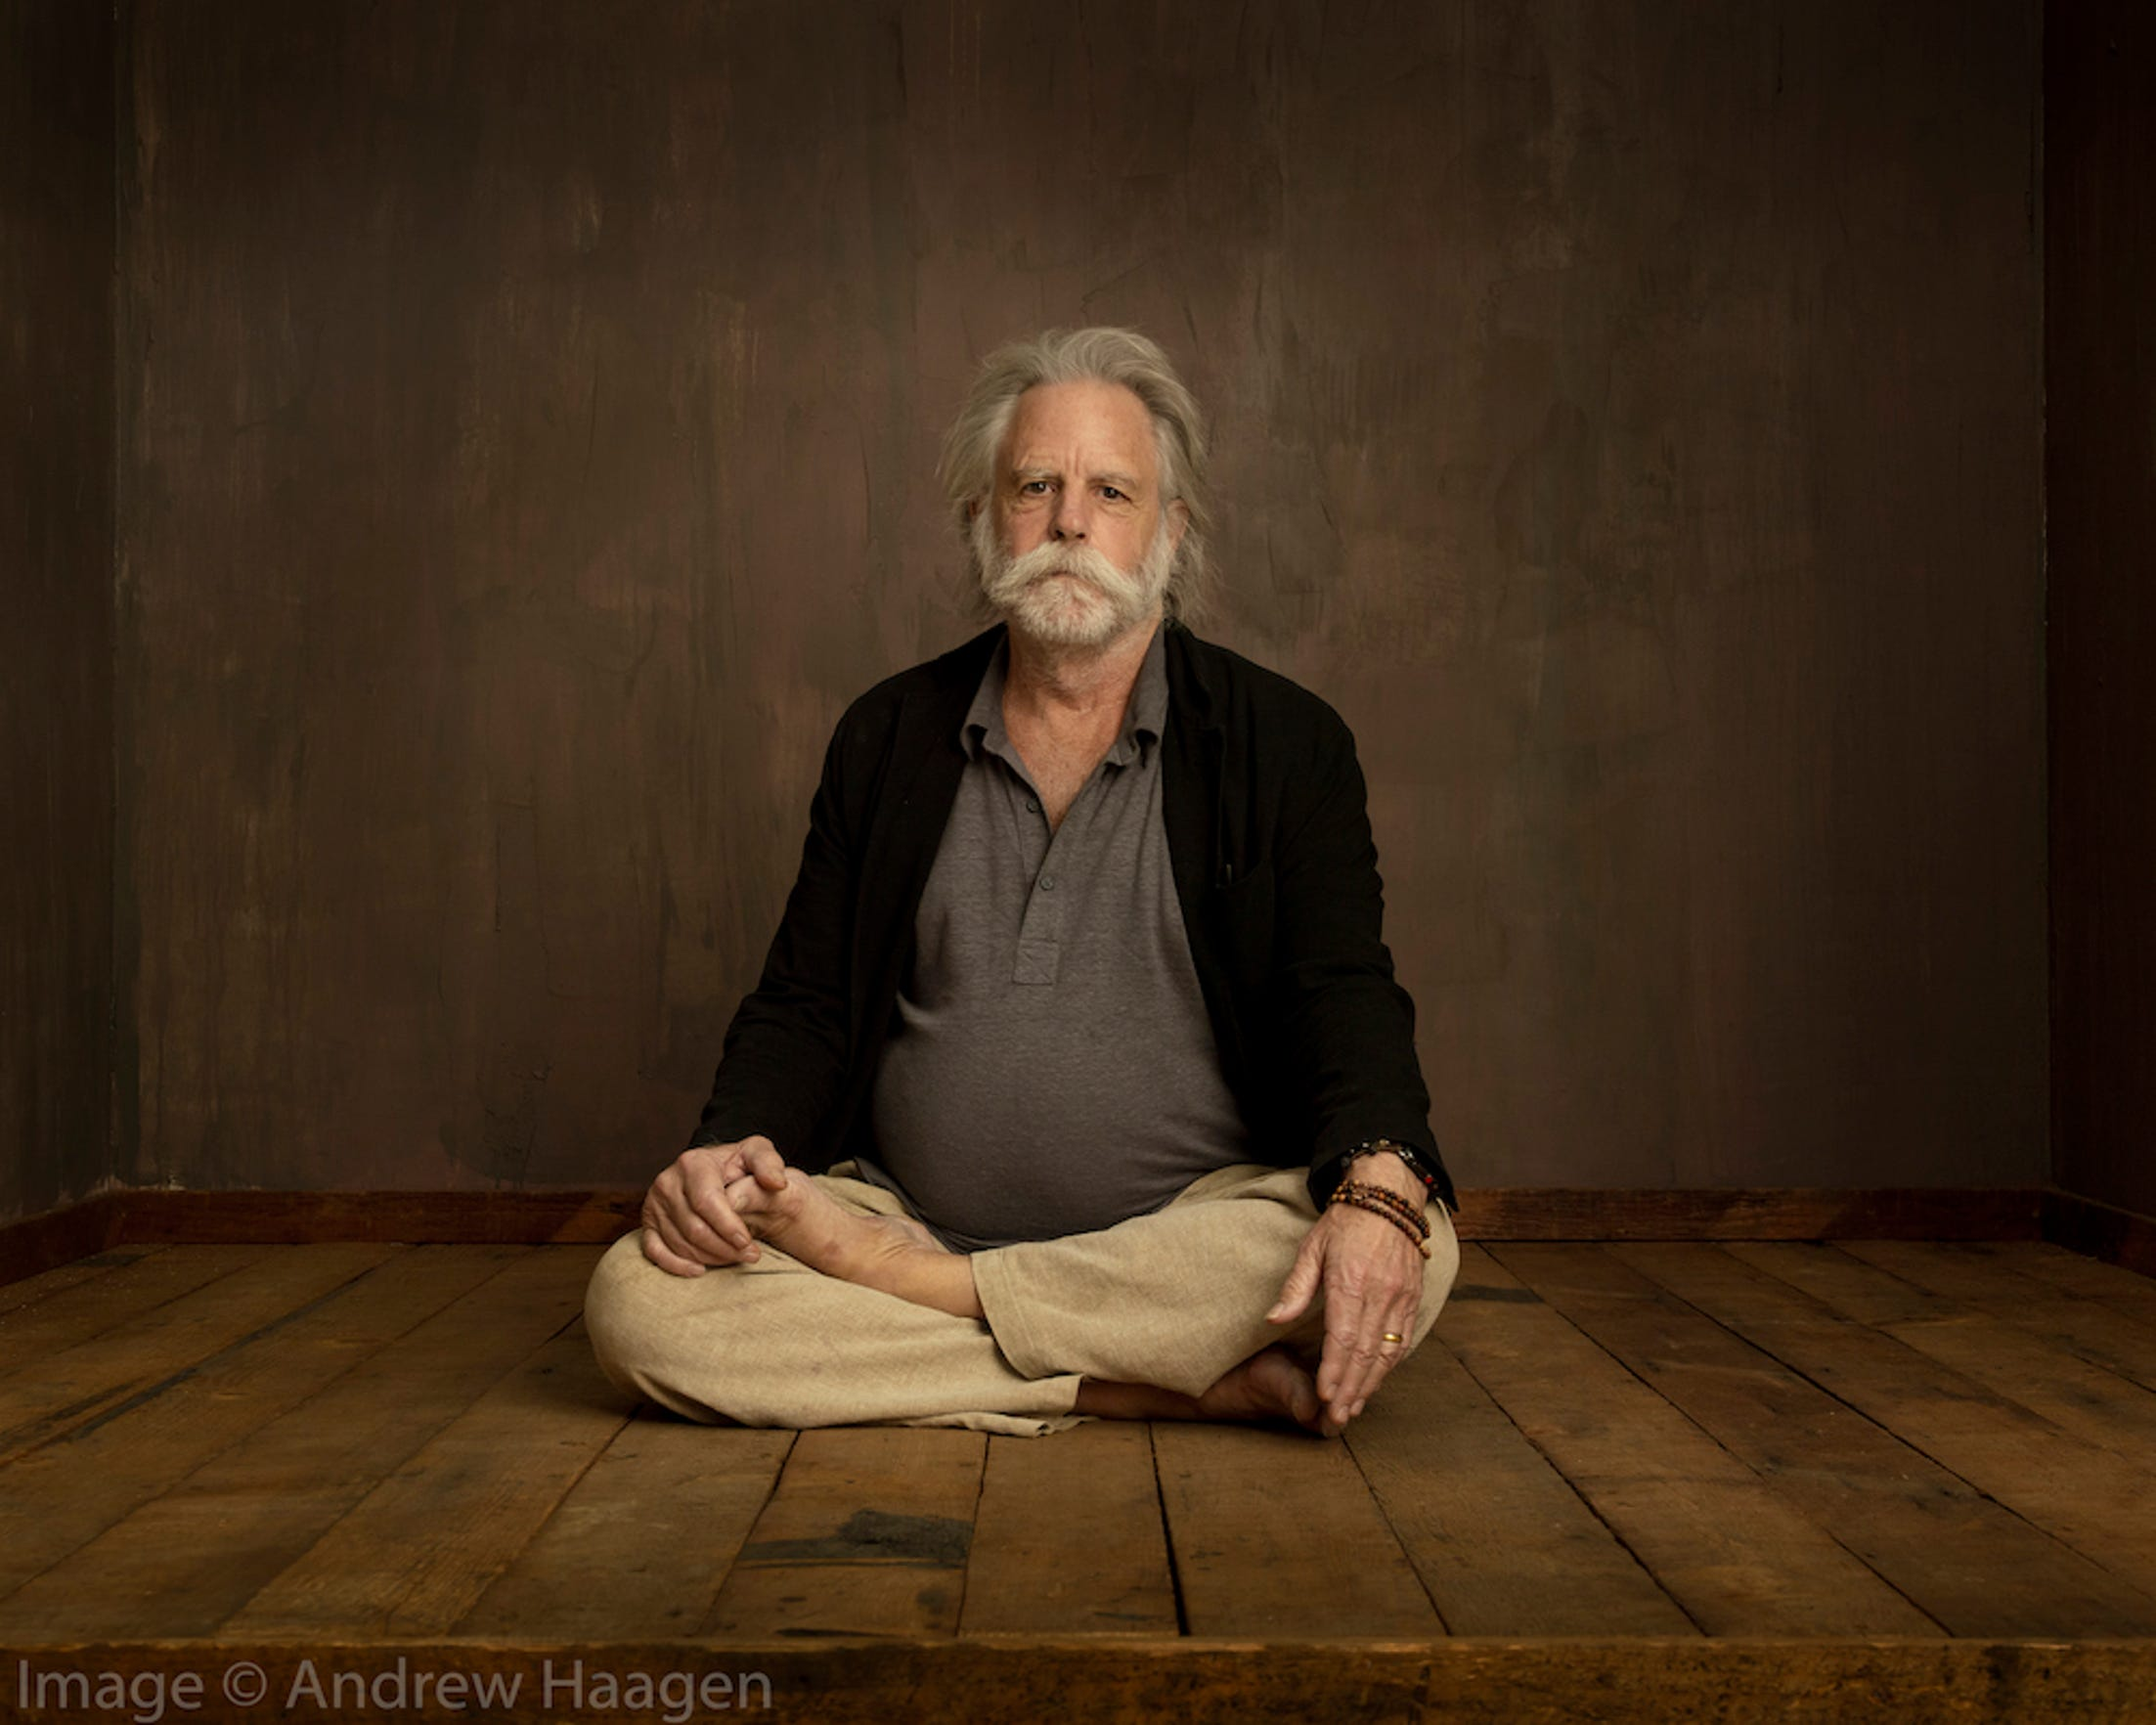 Bob Weir of the Grateful Dead said he had fun sitting for a Buddha-like photo and drinking beer with photographer Andrew Haagen.